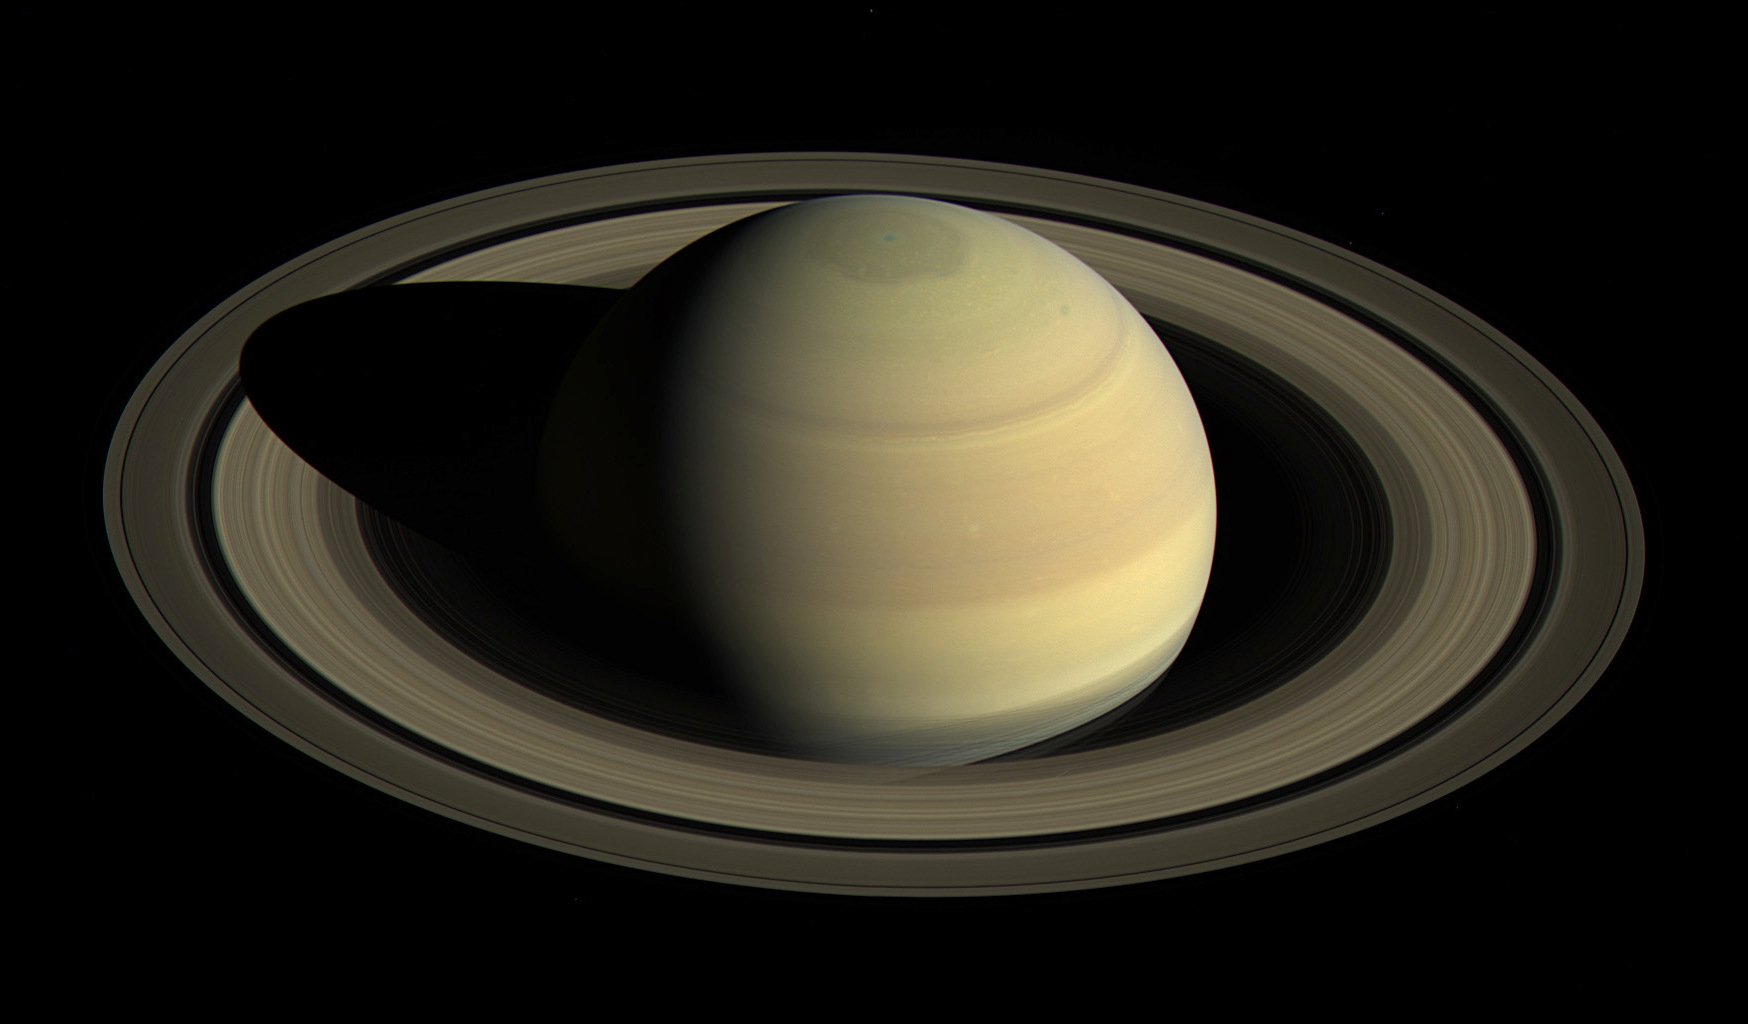 Since NASA's Cassini spacecraft arrived at Saturn, the planet's appearance has changed greatly. This view shows Saturn's northern hemisphere in 2016, as that part of the planet nears its northern hemisphere summer solstice in May 2017. Image credit: NASA/JPL-Caltech/Space Science Institute.